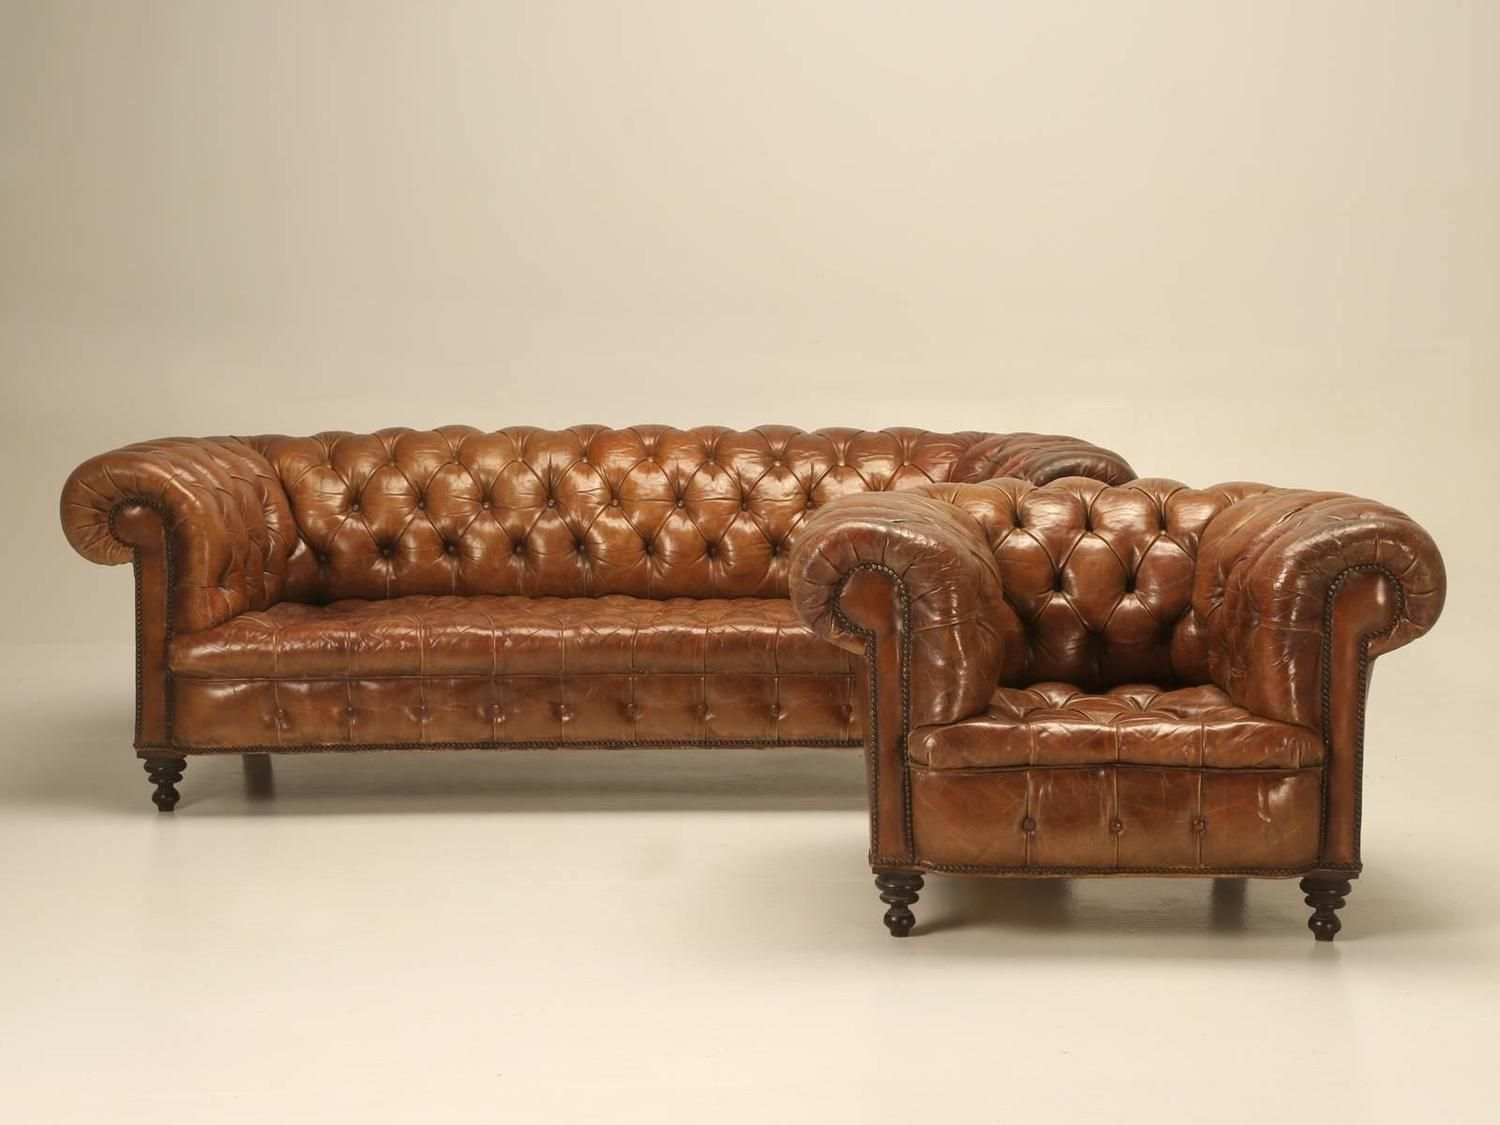 Antique Leather Chesterfield Sofa In Original Leather Leather Chesterfield Sofa Chesterfield Sofa Sofa Sale